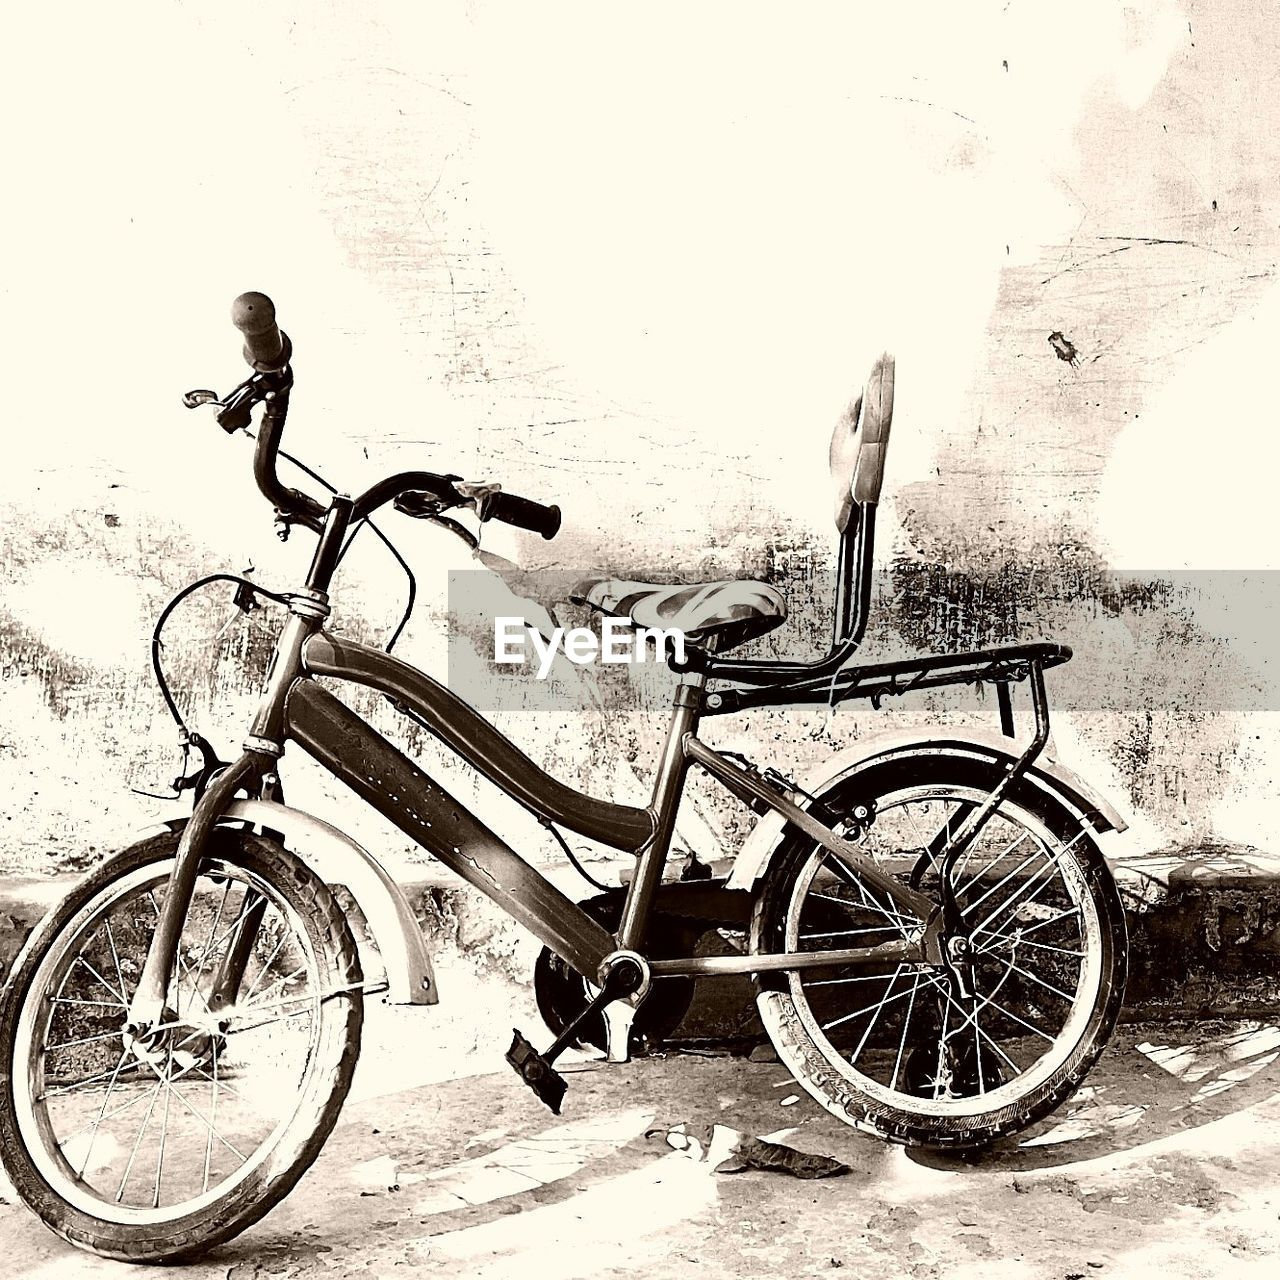 transportation, mode of transport, stationary, land vehicle, bicycle, day, outdoors, no people